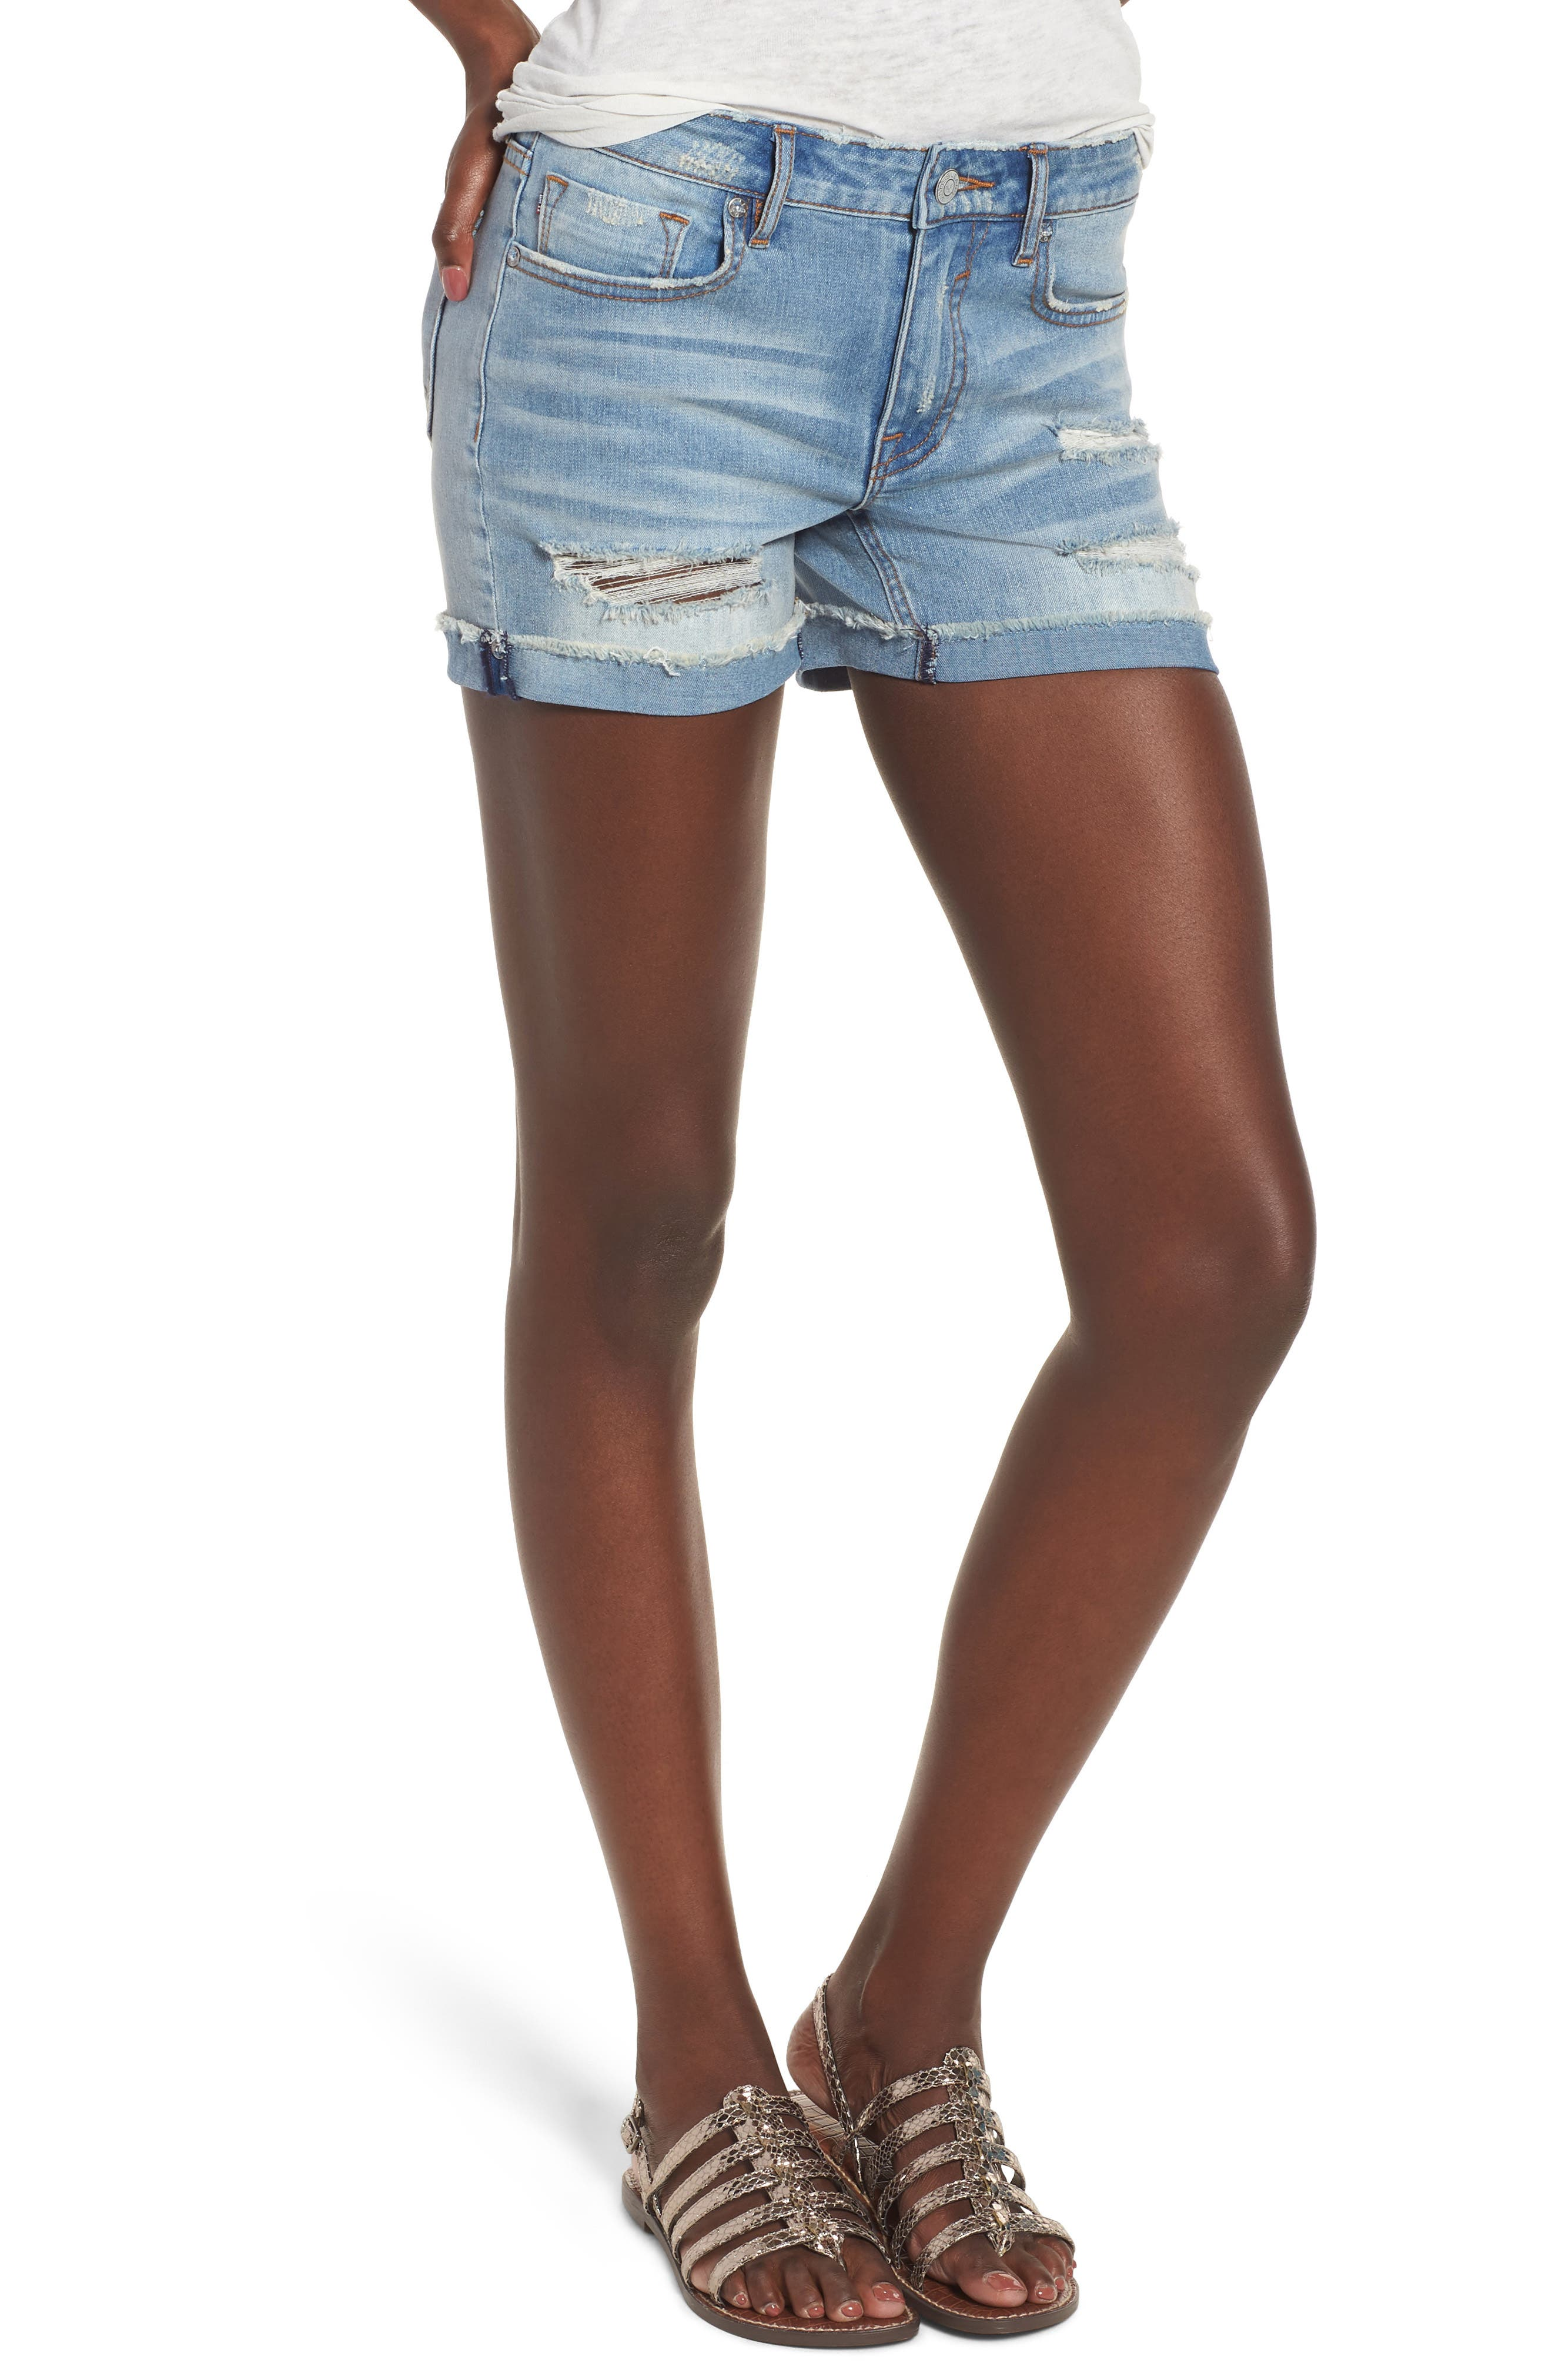 Marley Denim Shorts,                             Main thumbnail 1, color,                             461